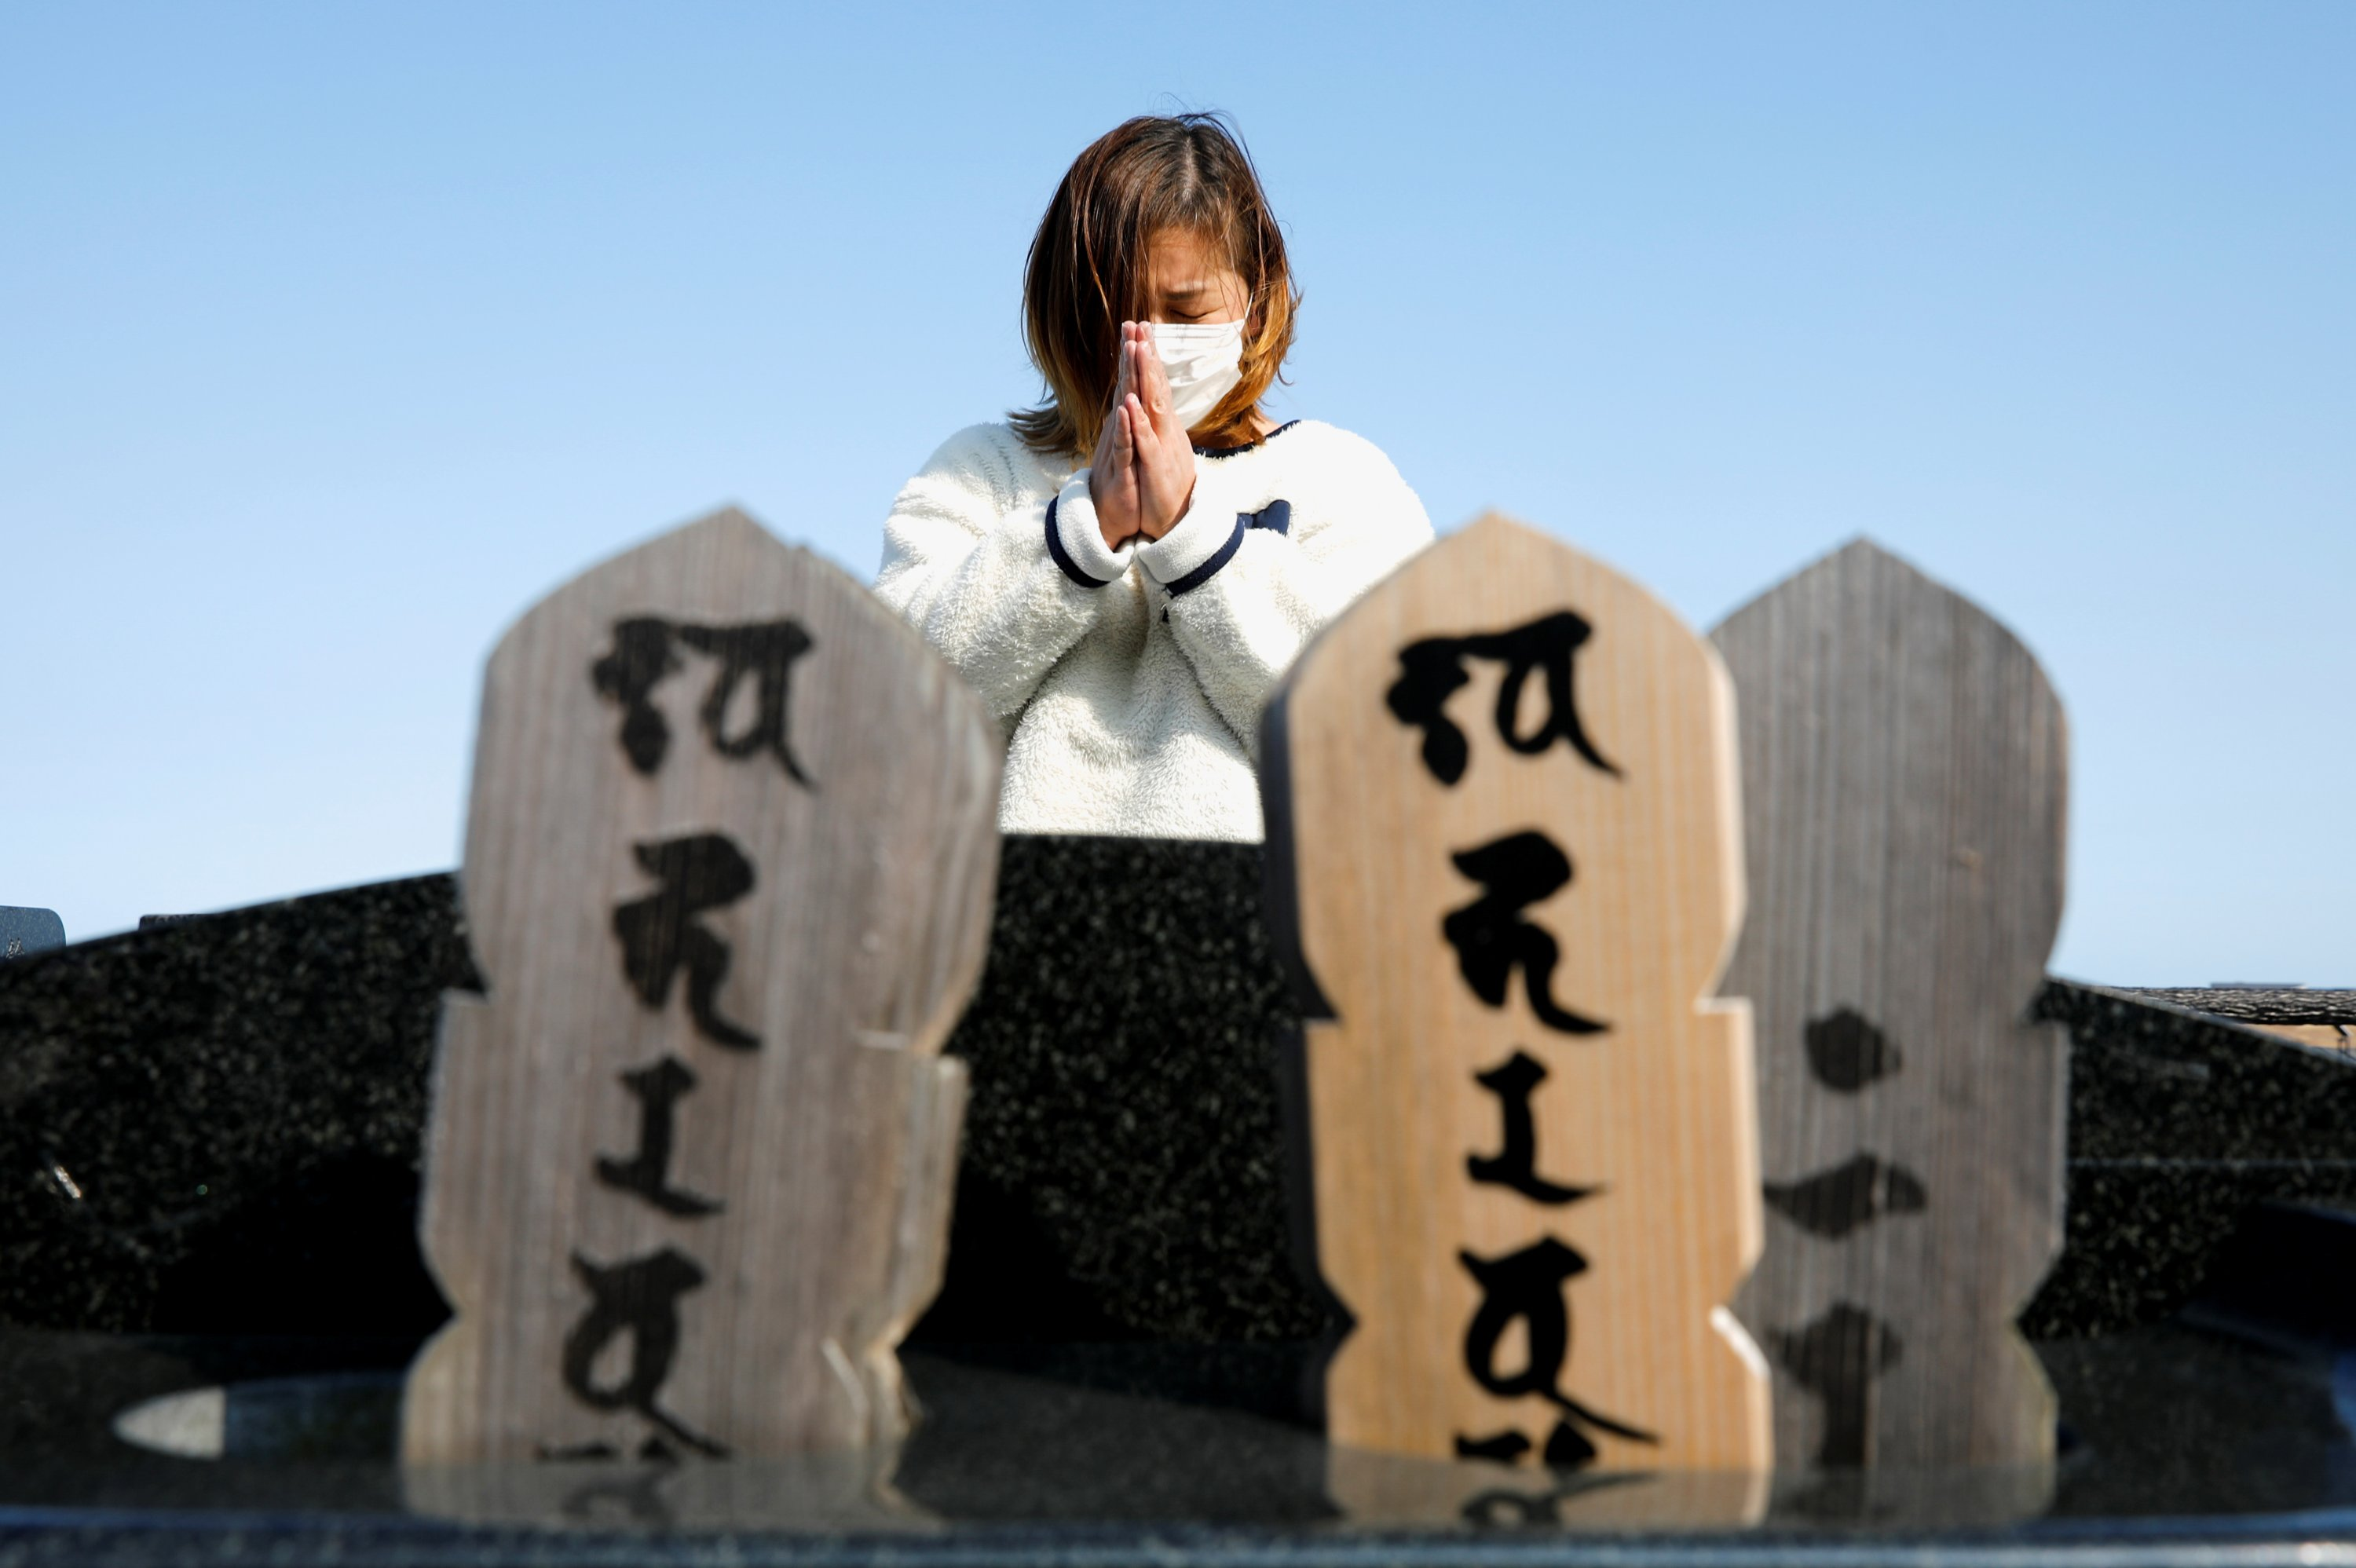 Harue Motoi, whose parents and younger brother died in 2011, prays in front of their grave during the 10th anniversary of the Fukushima disaster, in Namie, Fukushima prefecture, Japan, March 11, 2021. (Reuters)